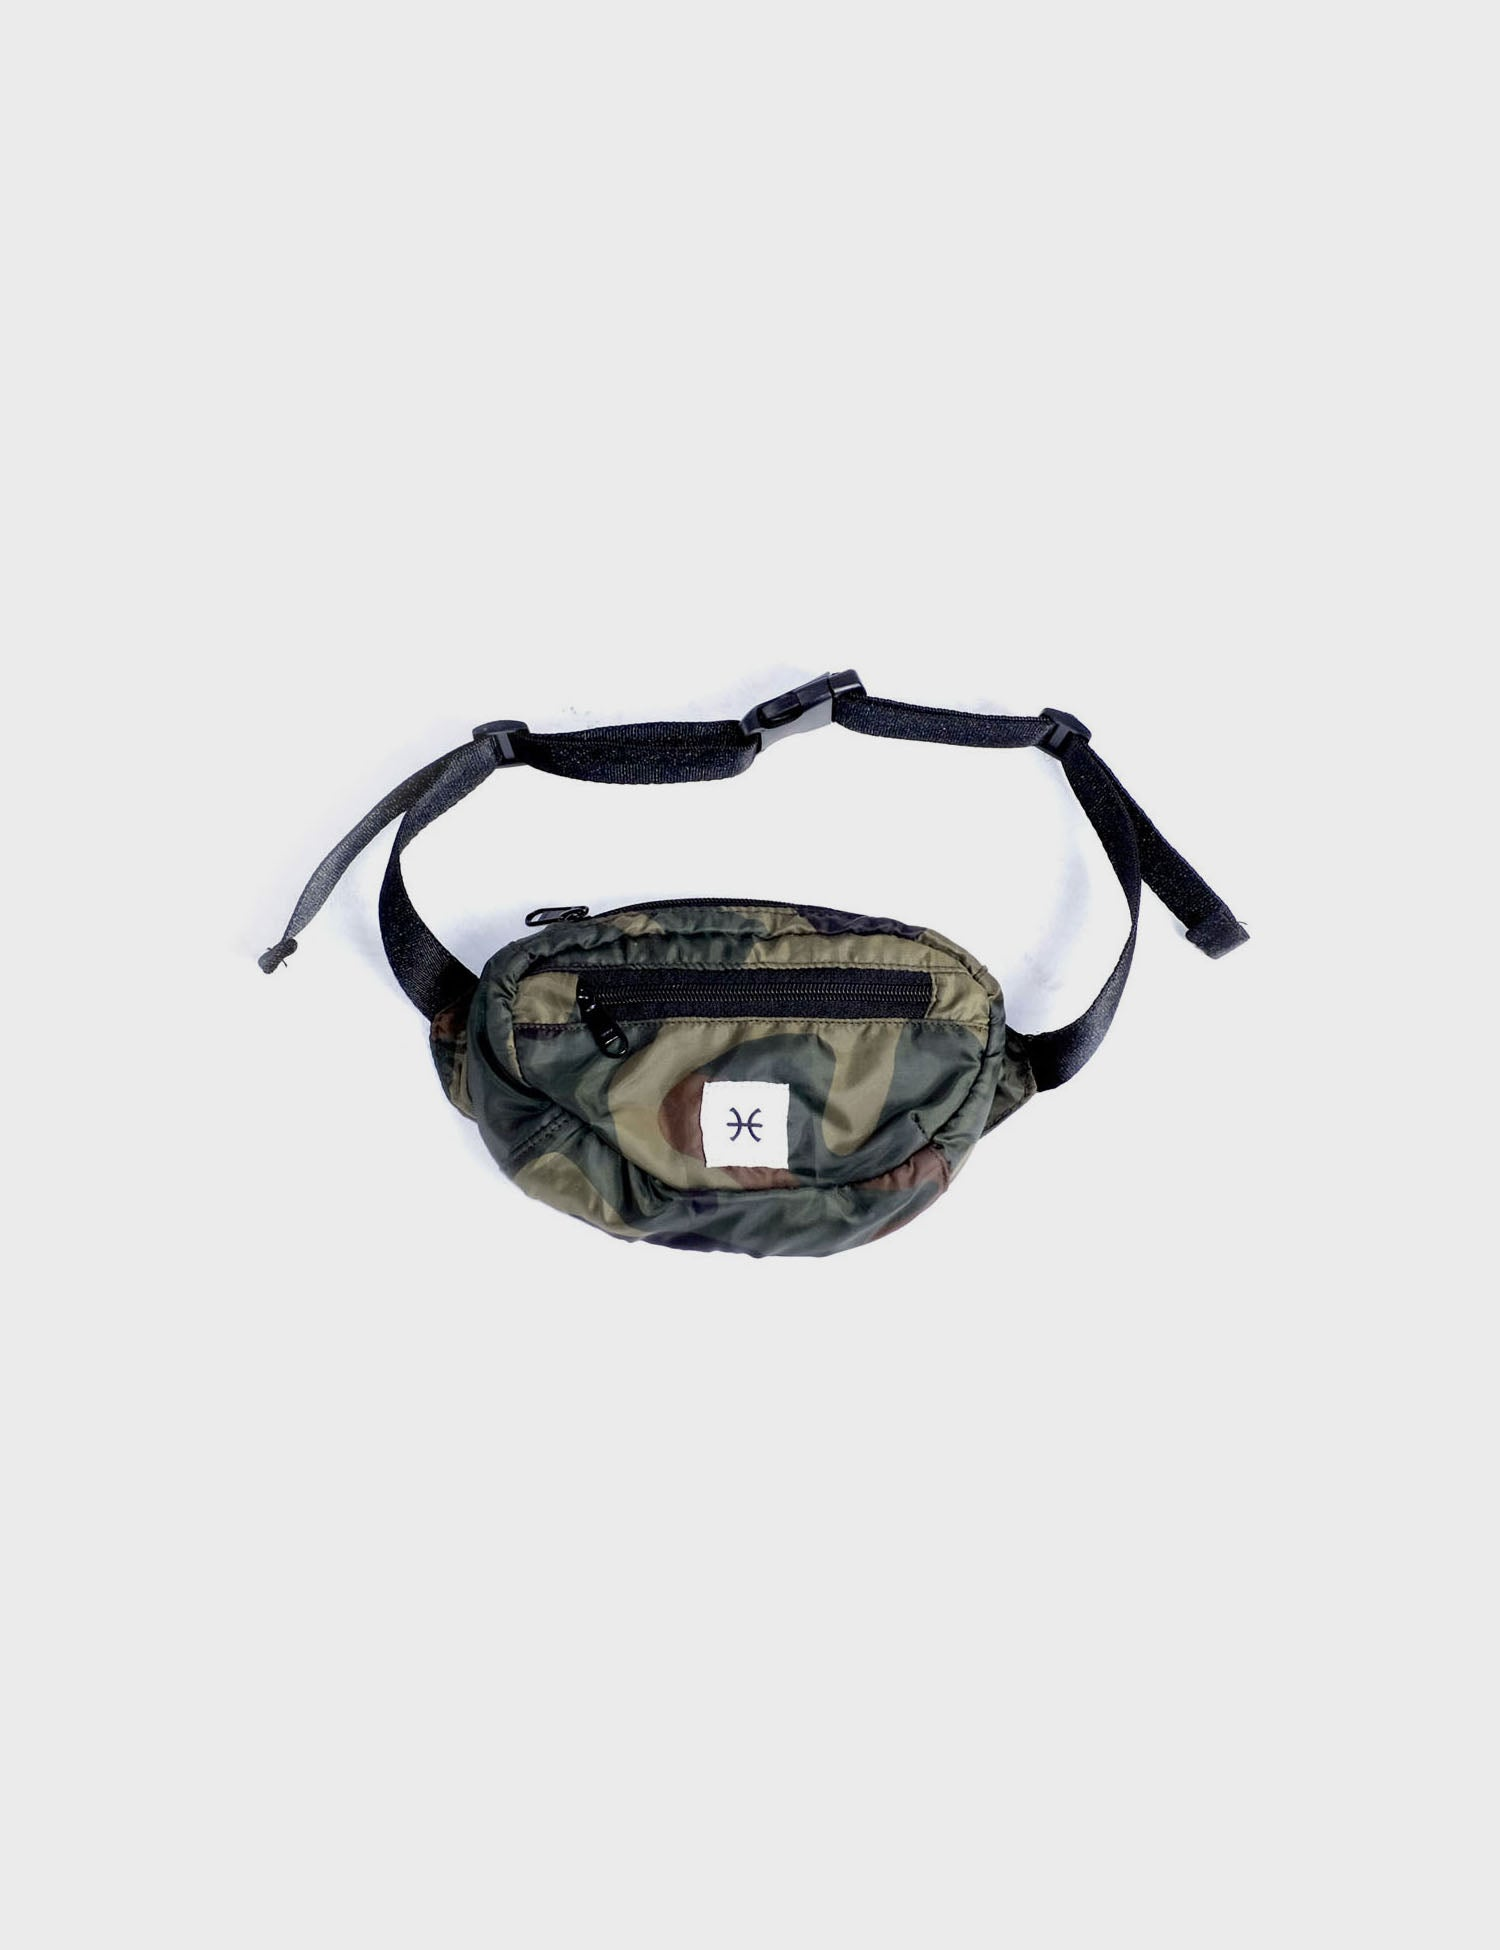 products/12H-wp-small-camo.jpg